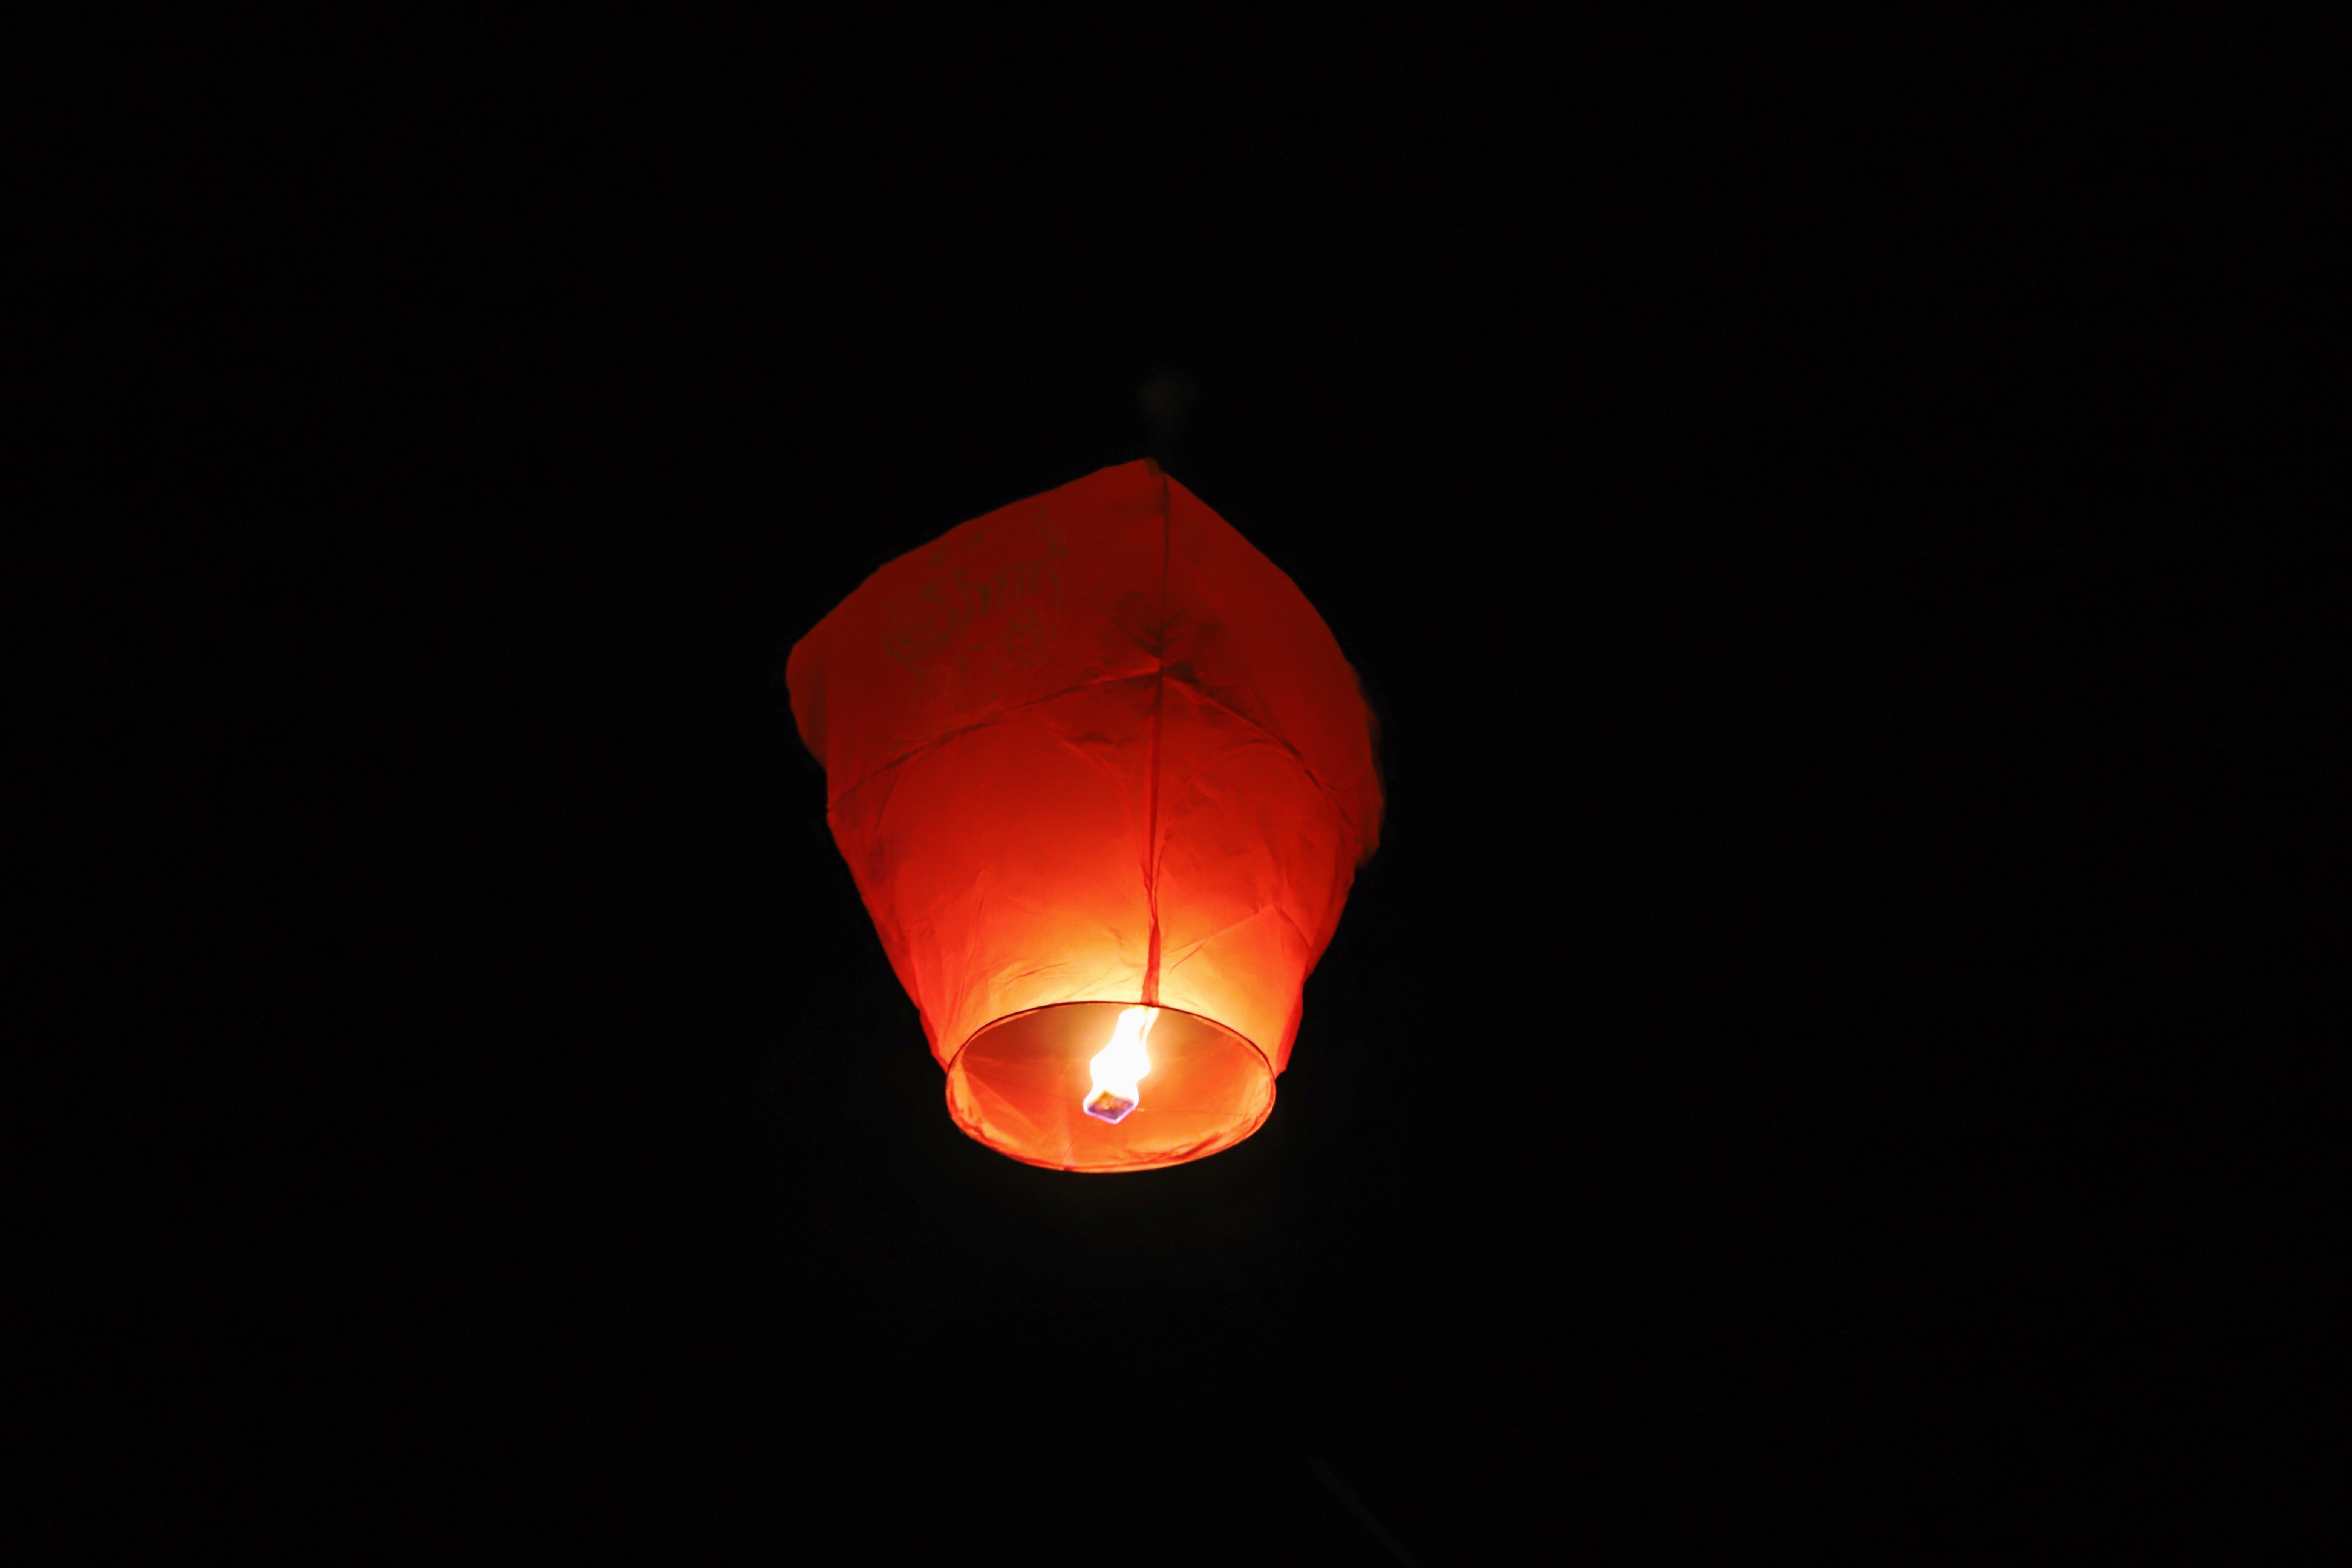 paper lantern with lighted candle in dark room